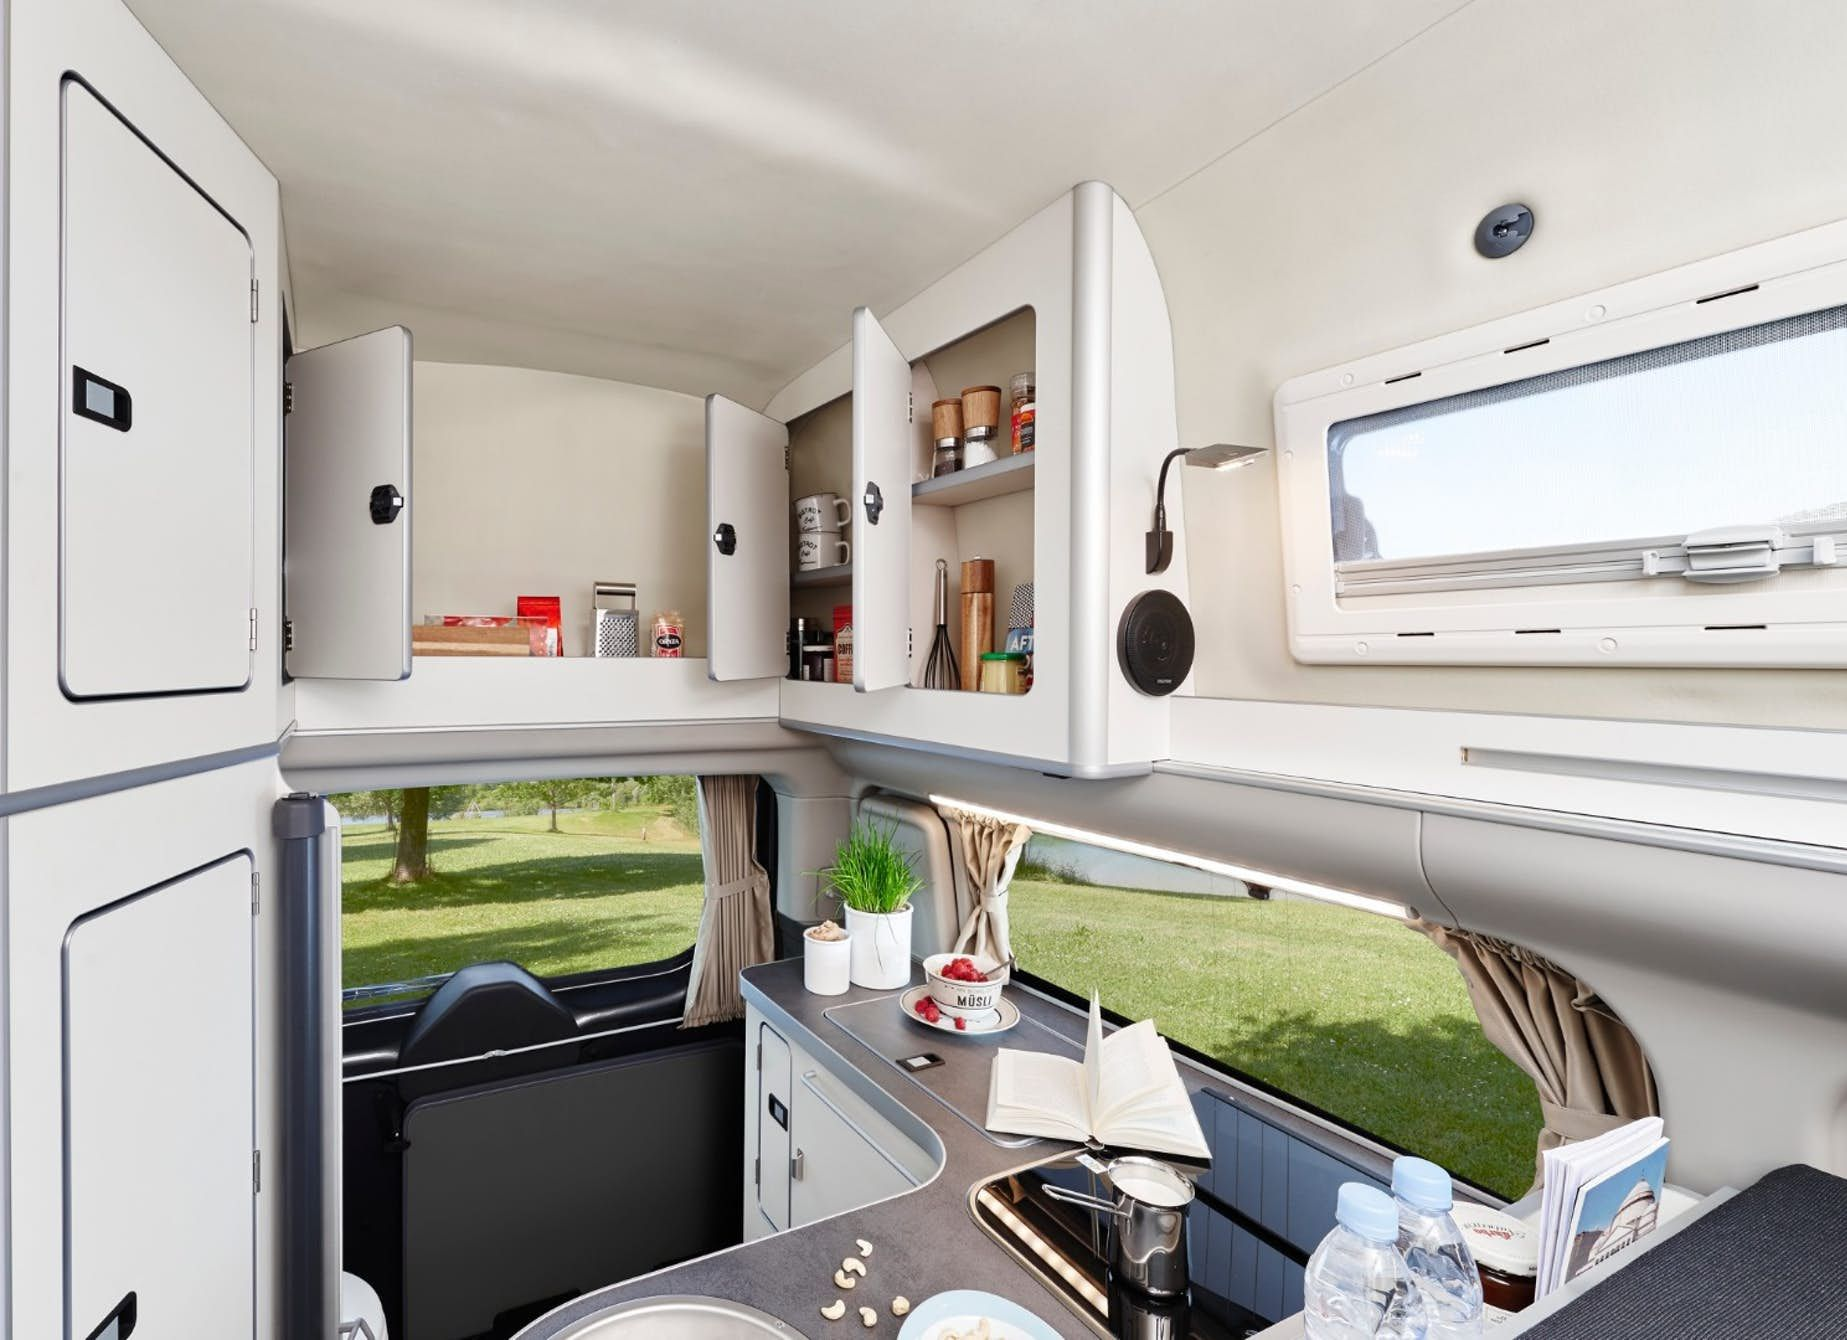 Westfalia Squeezes A Private Toilet Into Its Latest Ford Transit Camper Van Ford Transit Camper Transit Camper Mini Camper